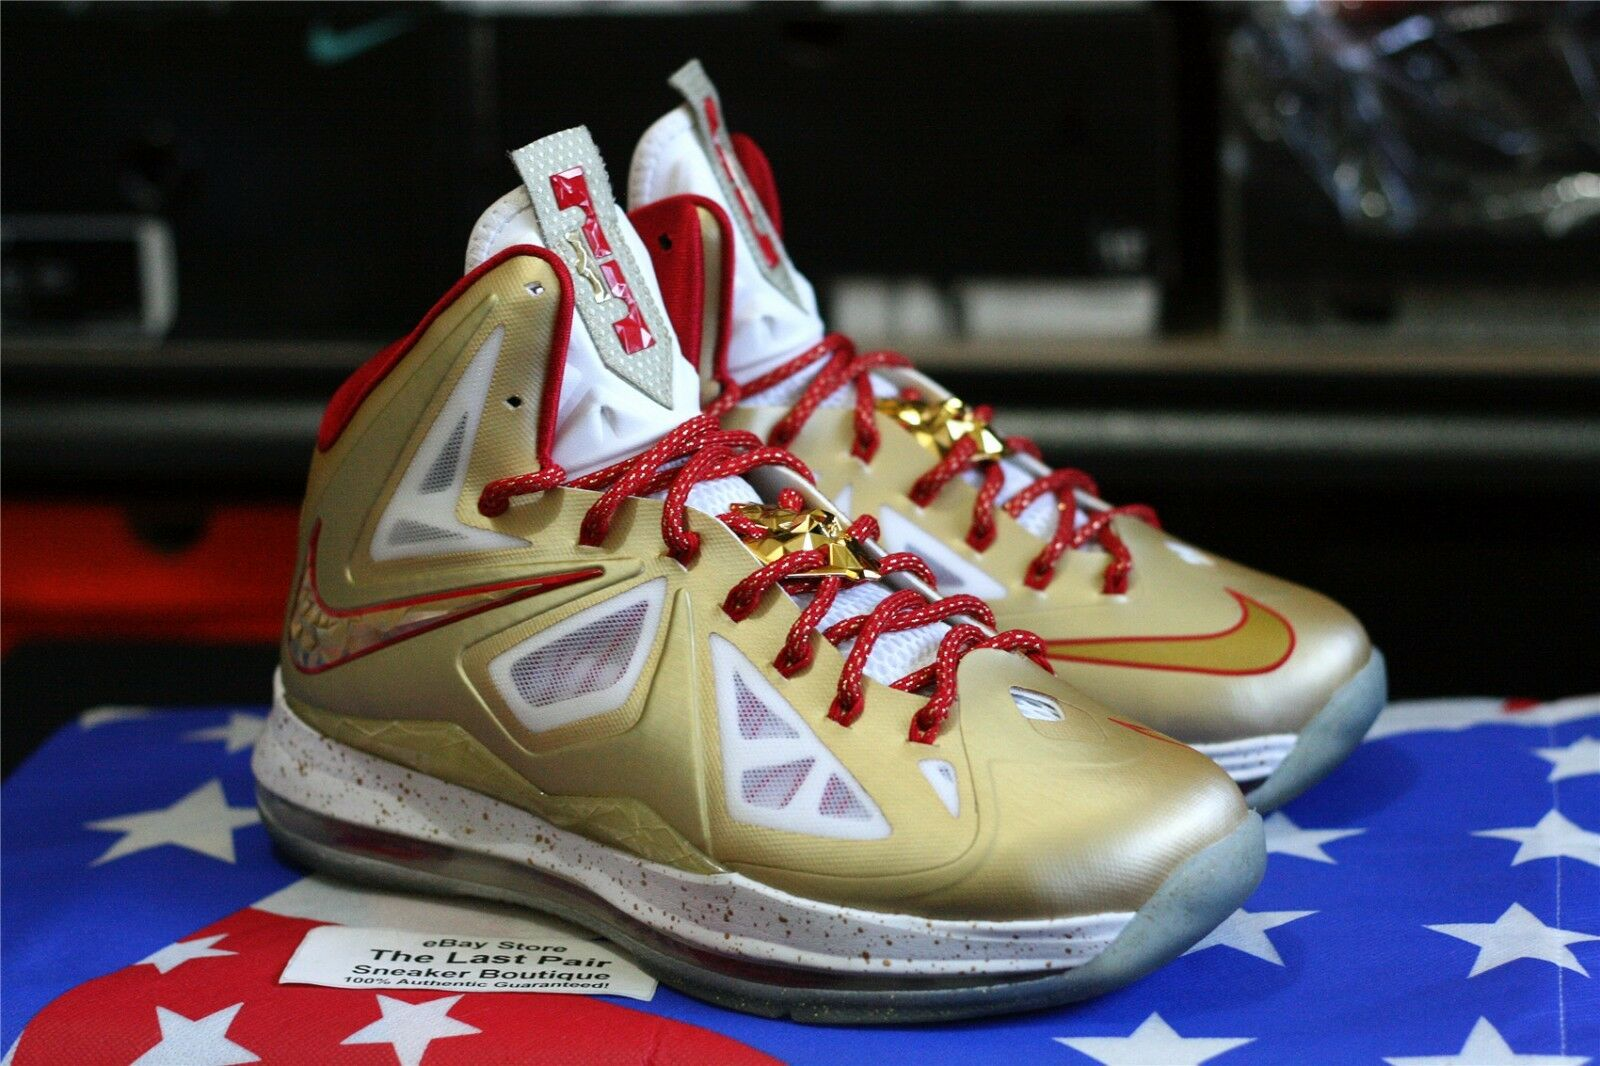 reputable site a1fa3 61b4d DS NIKE LEBRON X RING CEREMONY PROMO SAMPLE 7.5 7.5 7.5 GOLD RED PE MVP  CHAMPIONSHIP. Mens Red Air Jordans retro ...